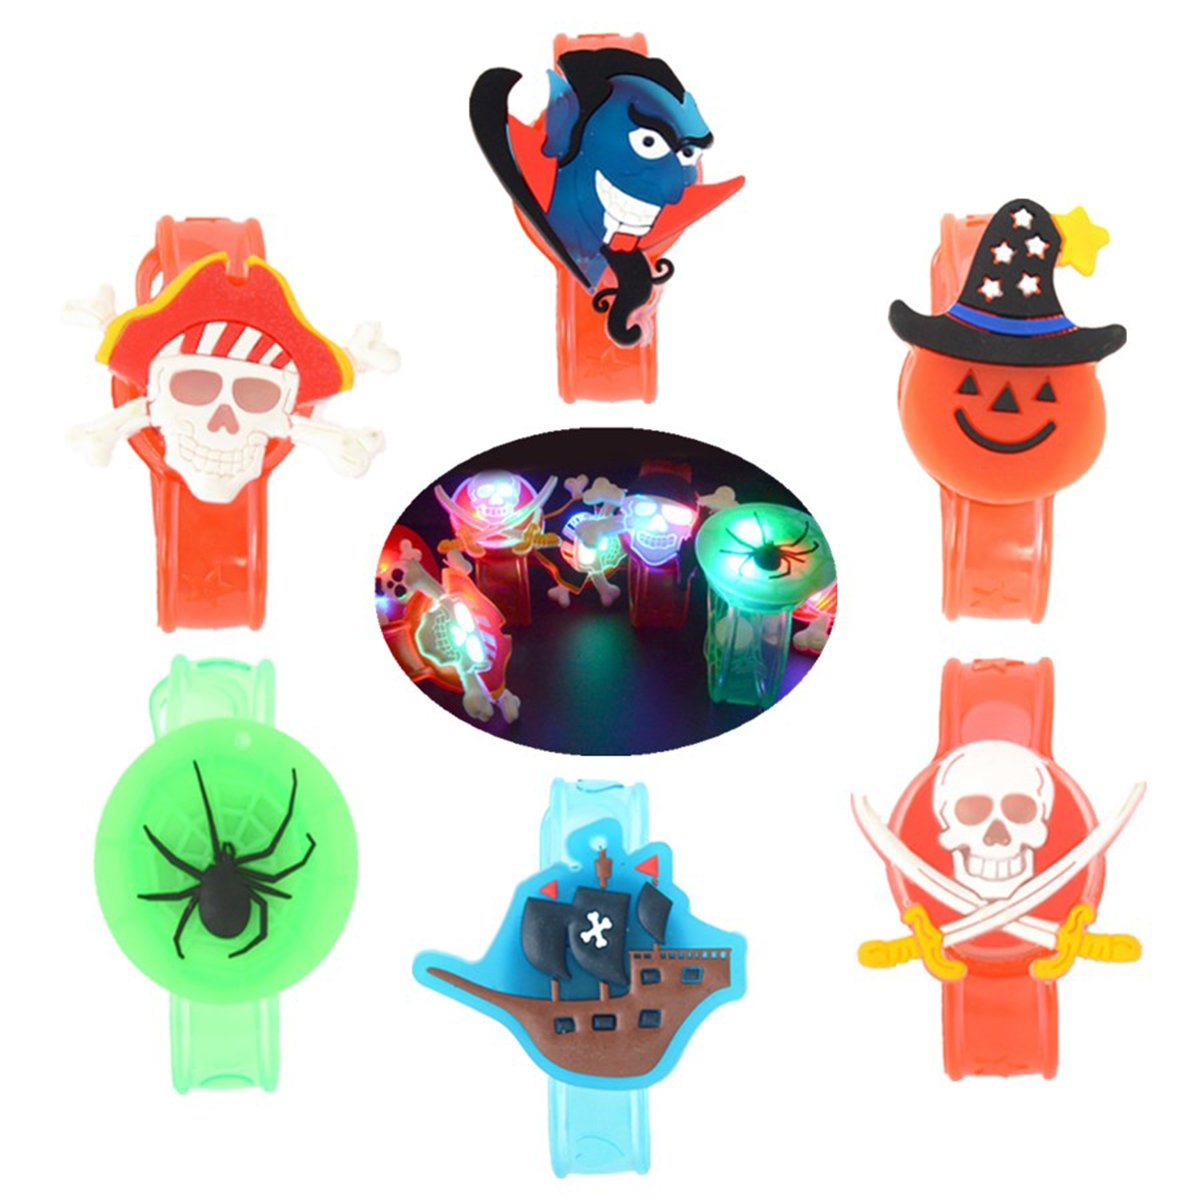 YeahiBaby 6Pcs Light up Bracelets Party Favor Light Up Wristbands for Halloween Chritmas Festival Dance Party by YeahiBaby (Image #4)